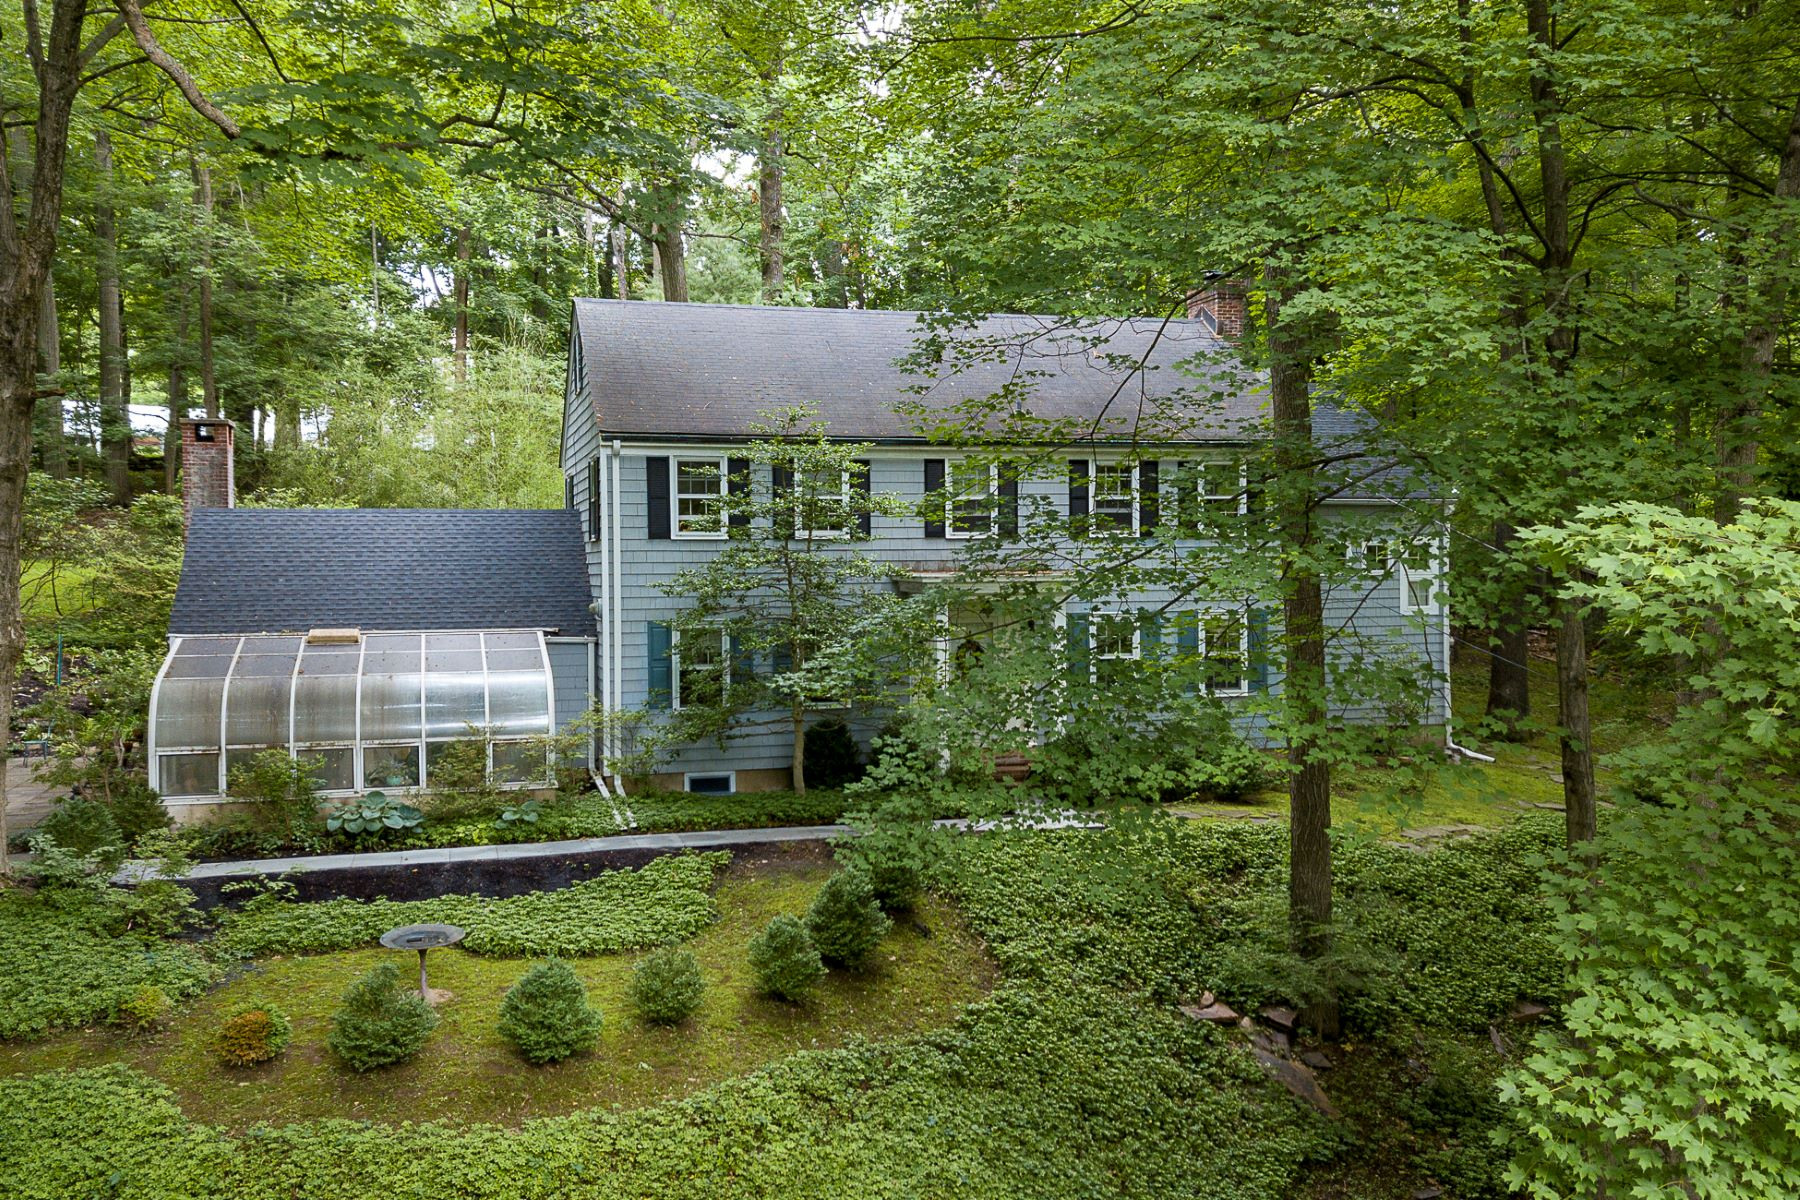 Natural Privacy and the Perfect Vantage Point 133 Lambert Drive, Princeton, New Jersey 08540 Förenta staterna